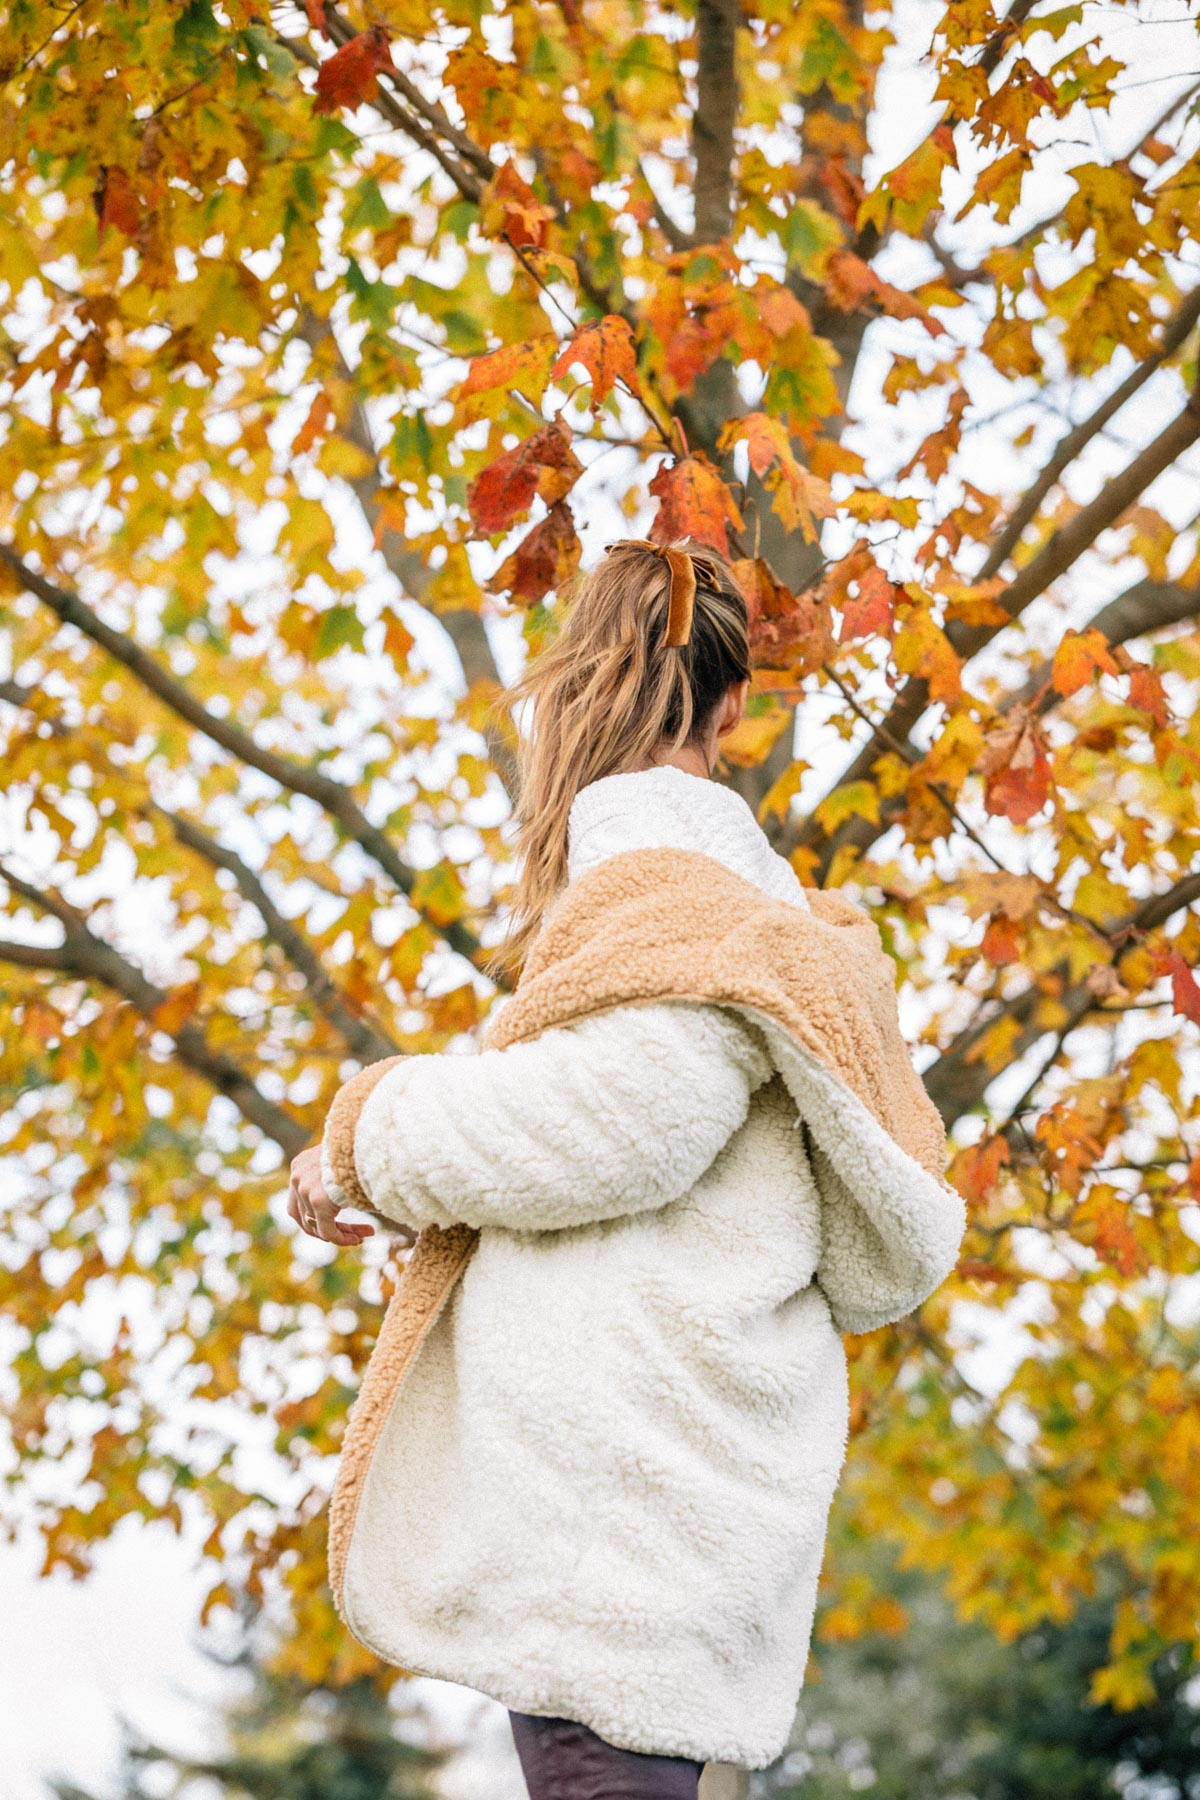 Jess Ann Kirby styles a fall look featuring the Urban Outfitters Magnolia Cozy Reversible Coat